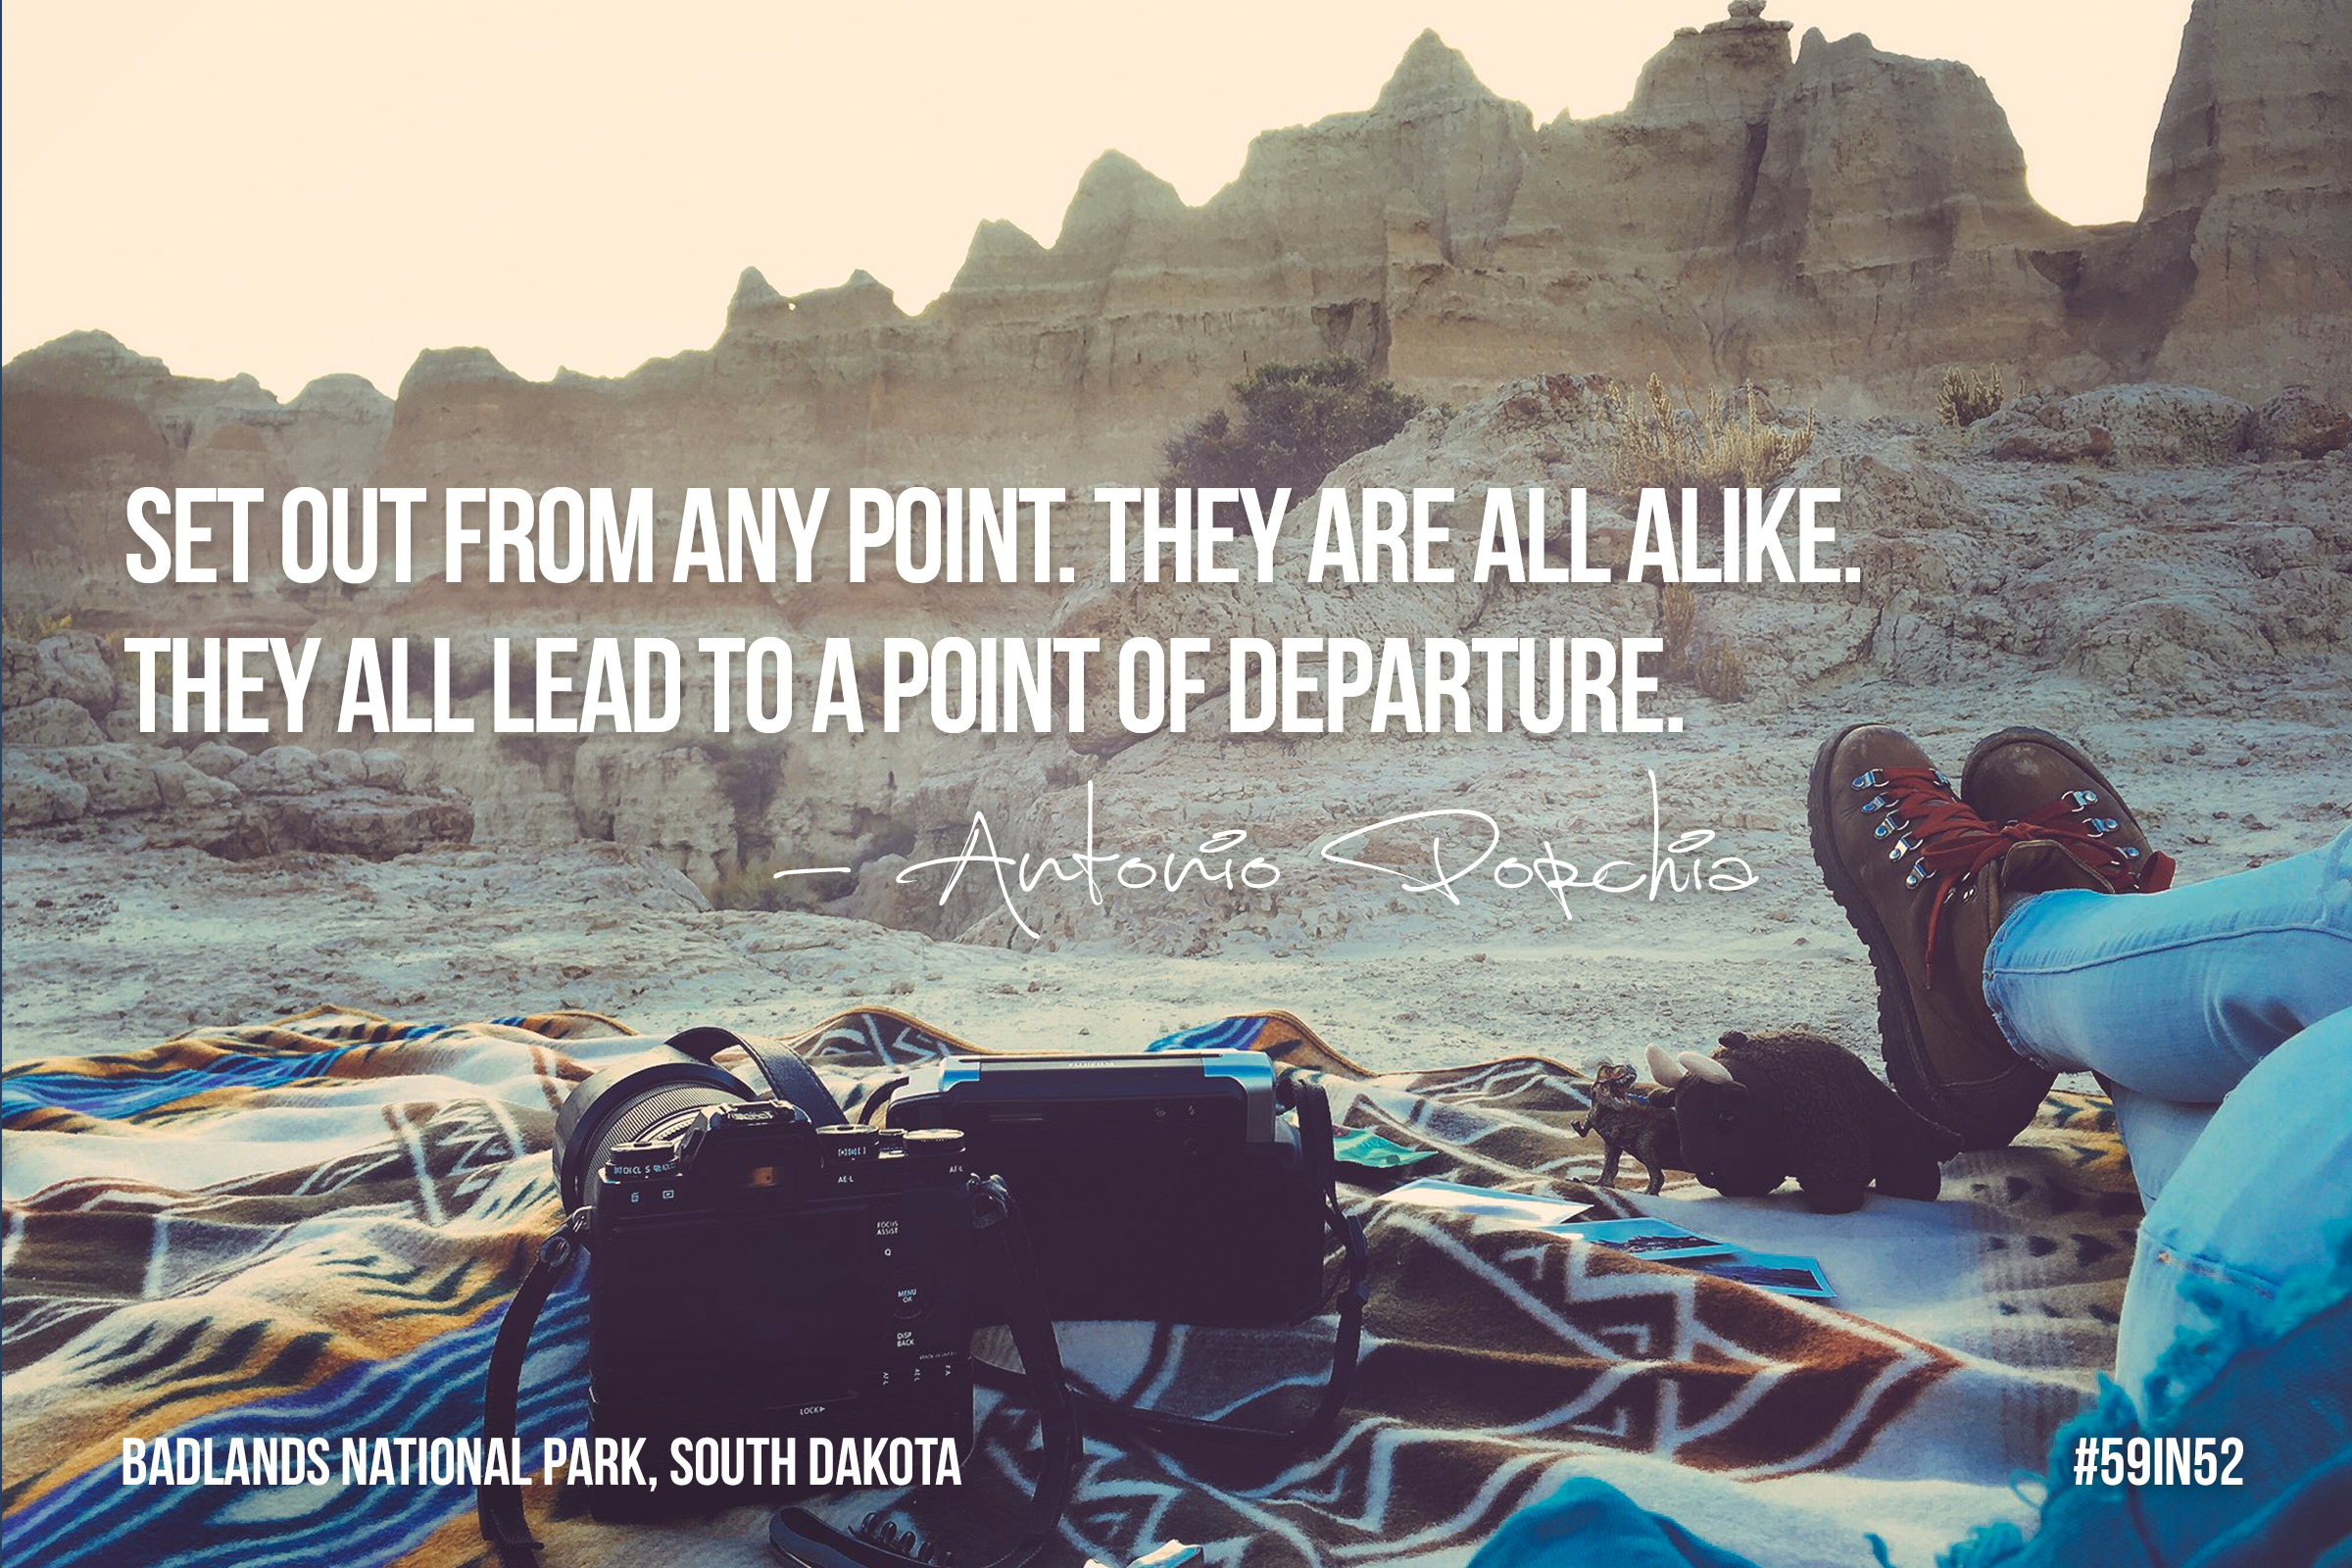 """Set out from any point. They are all alike. They all lead to a point of departure."" - Antonio Porchia"